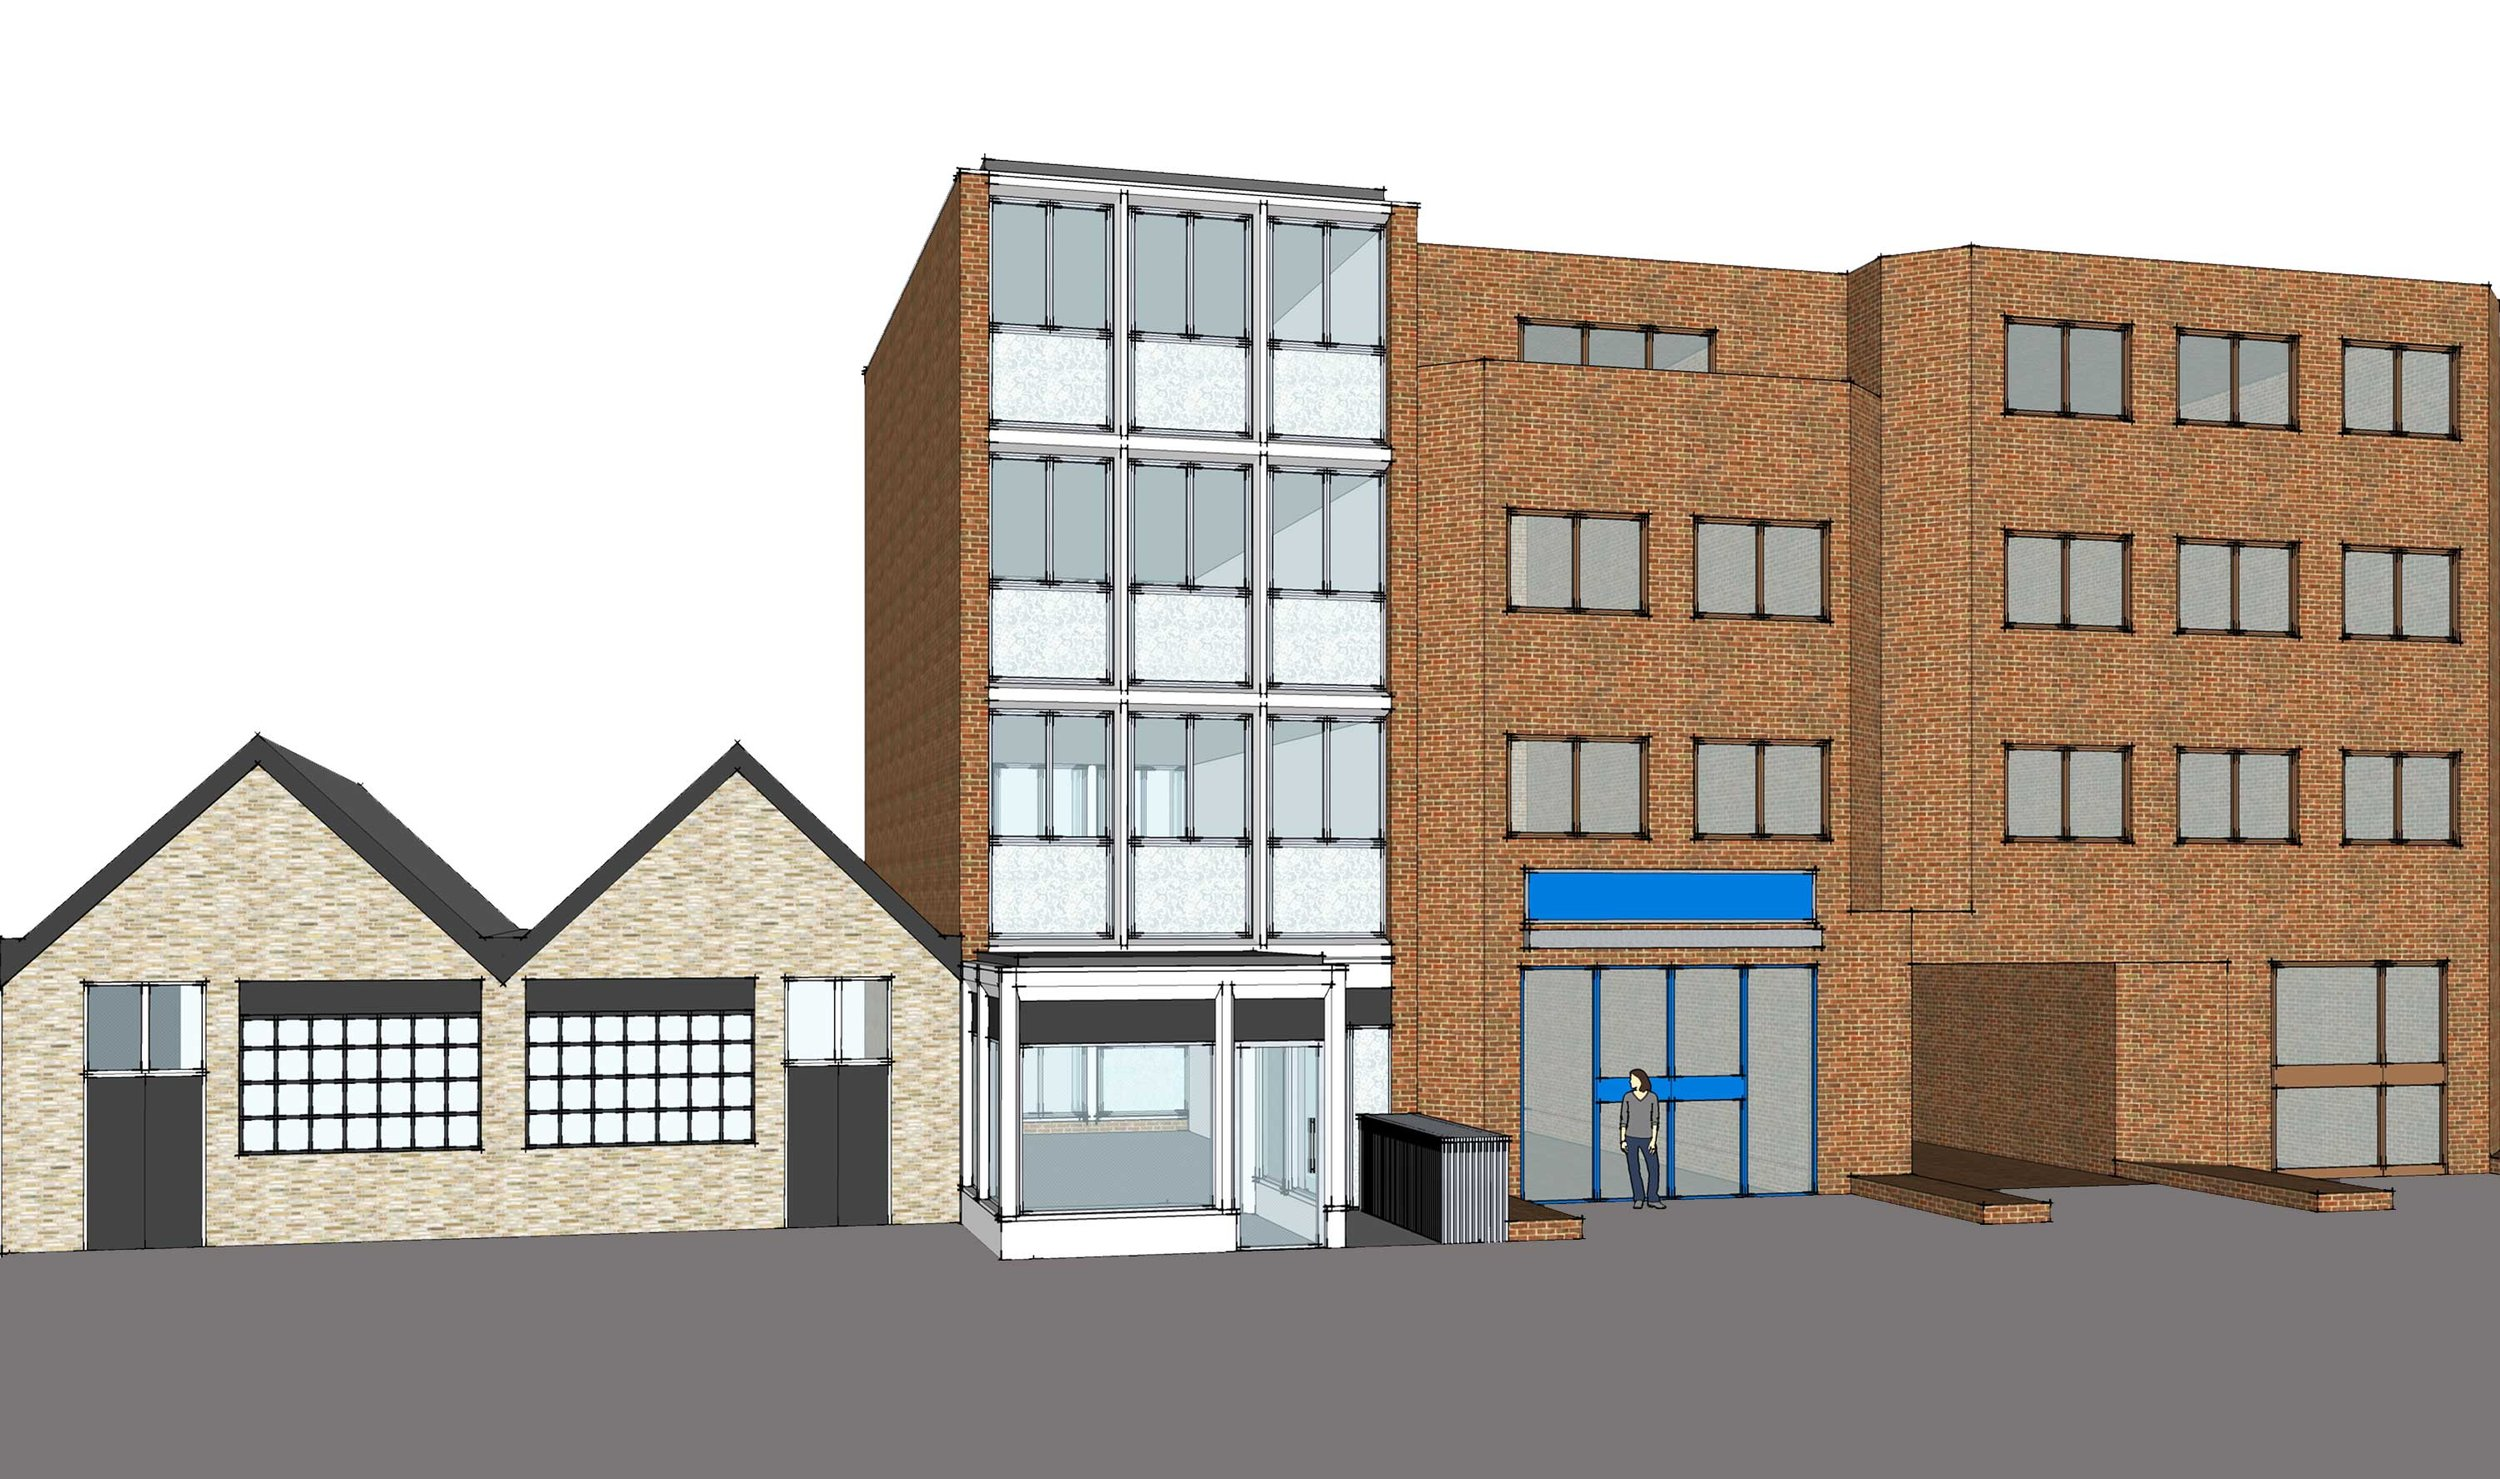 EBR-East-Barnet-Road-Elevation-Craeft-Architects.jpg